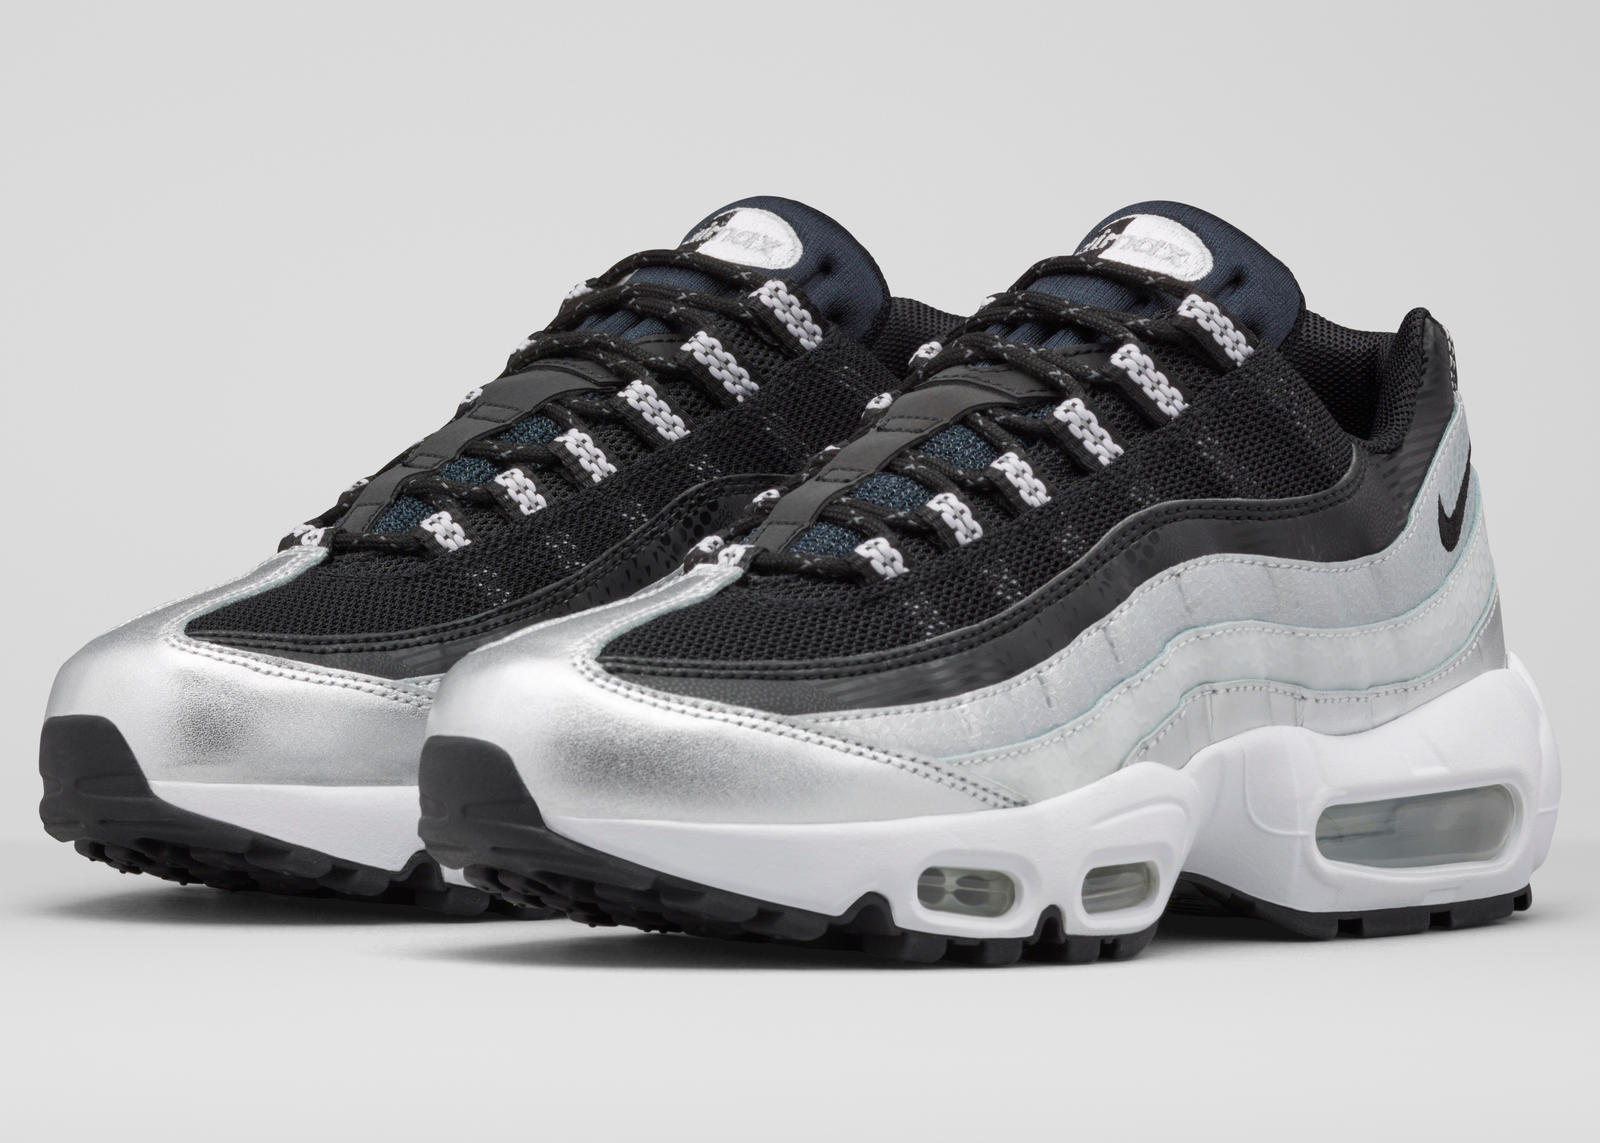 nike-air-max-95 share image EXUIZGX